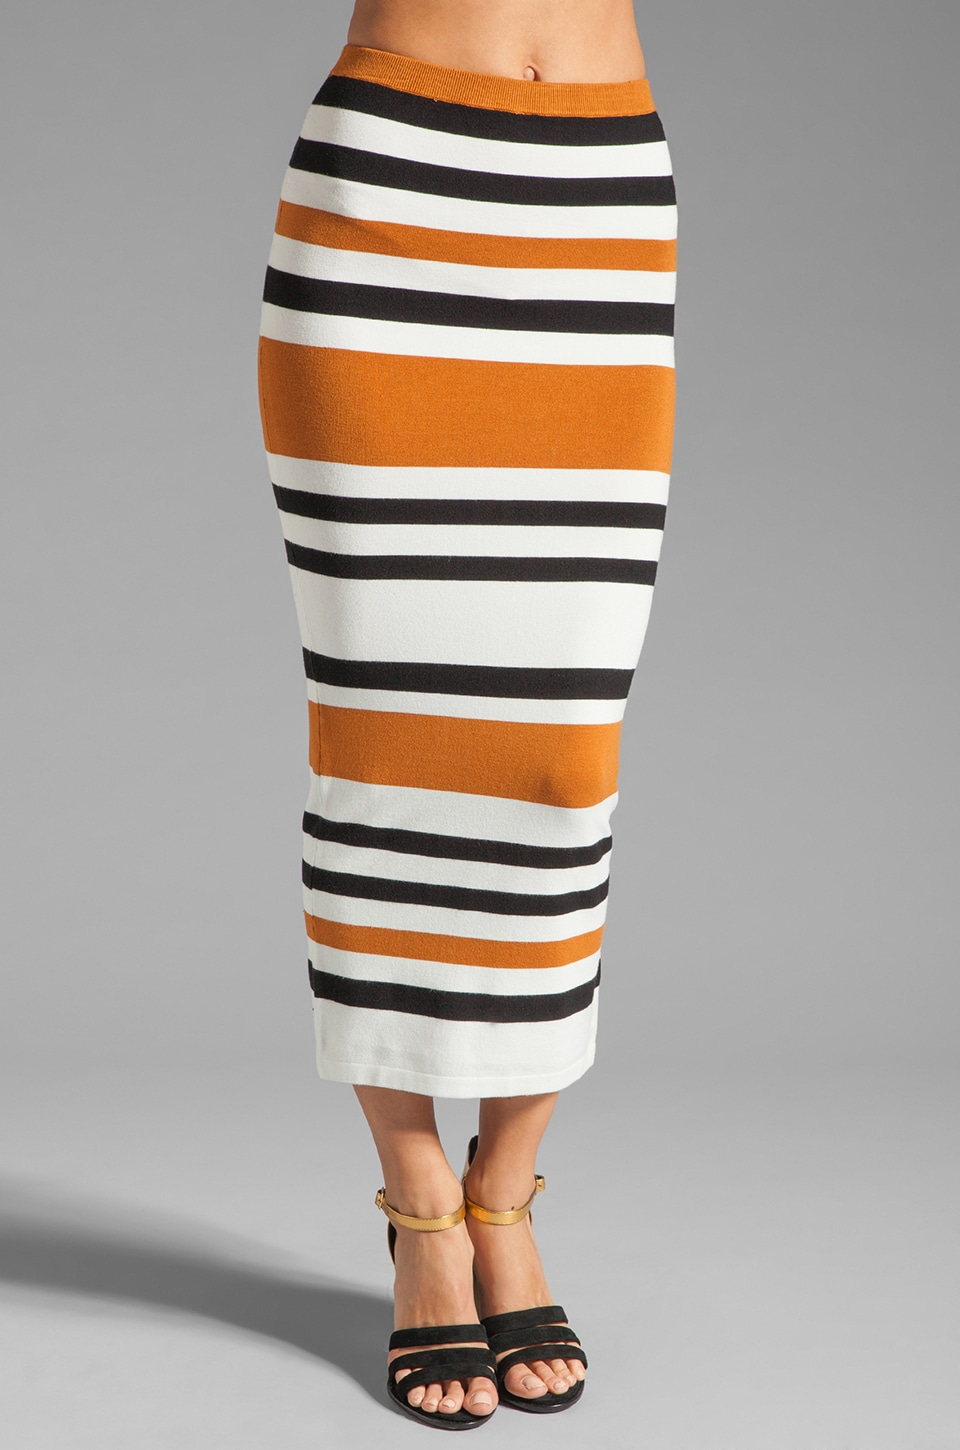 Torn by Ronny Kobo Ronny Cruise Stripe Skirt in White/Camel/Black